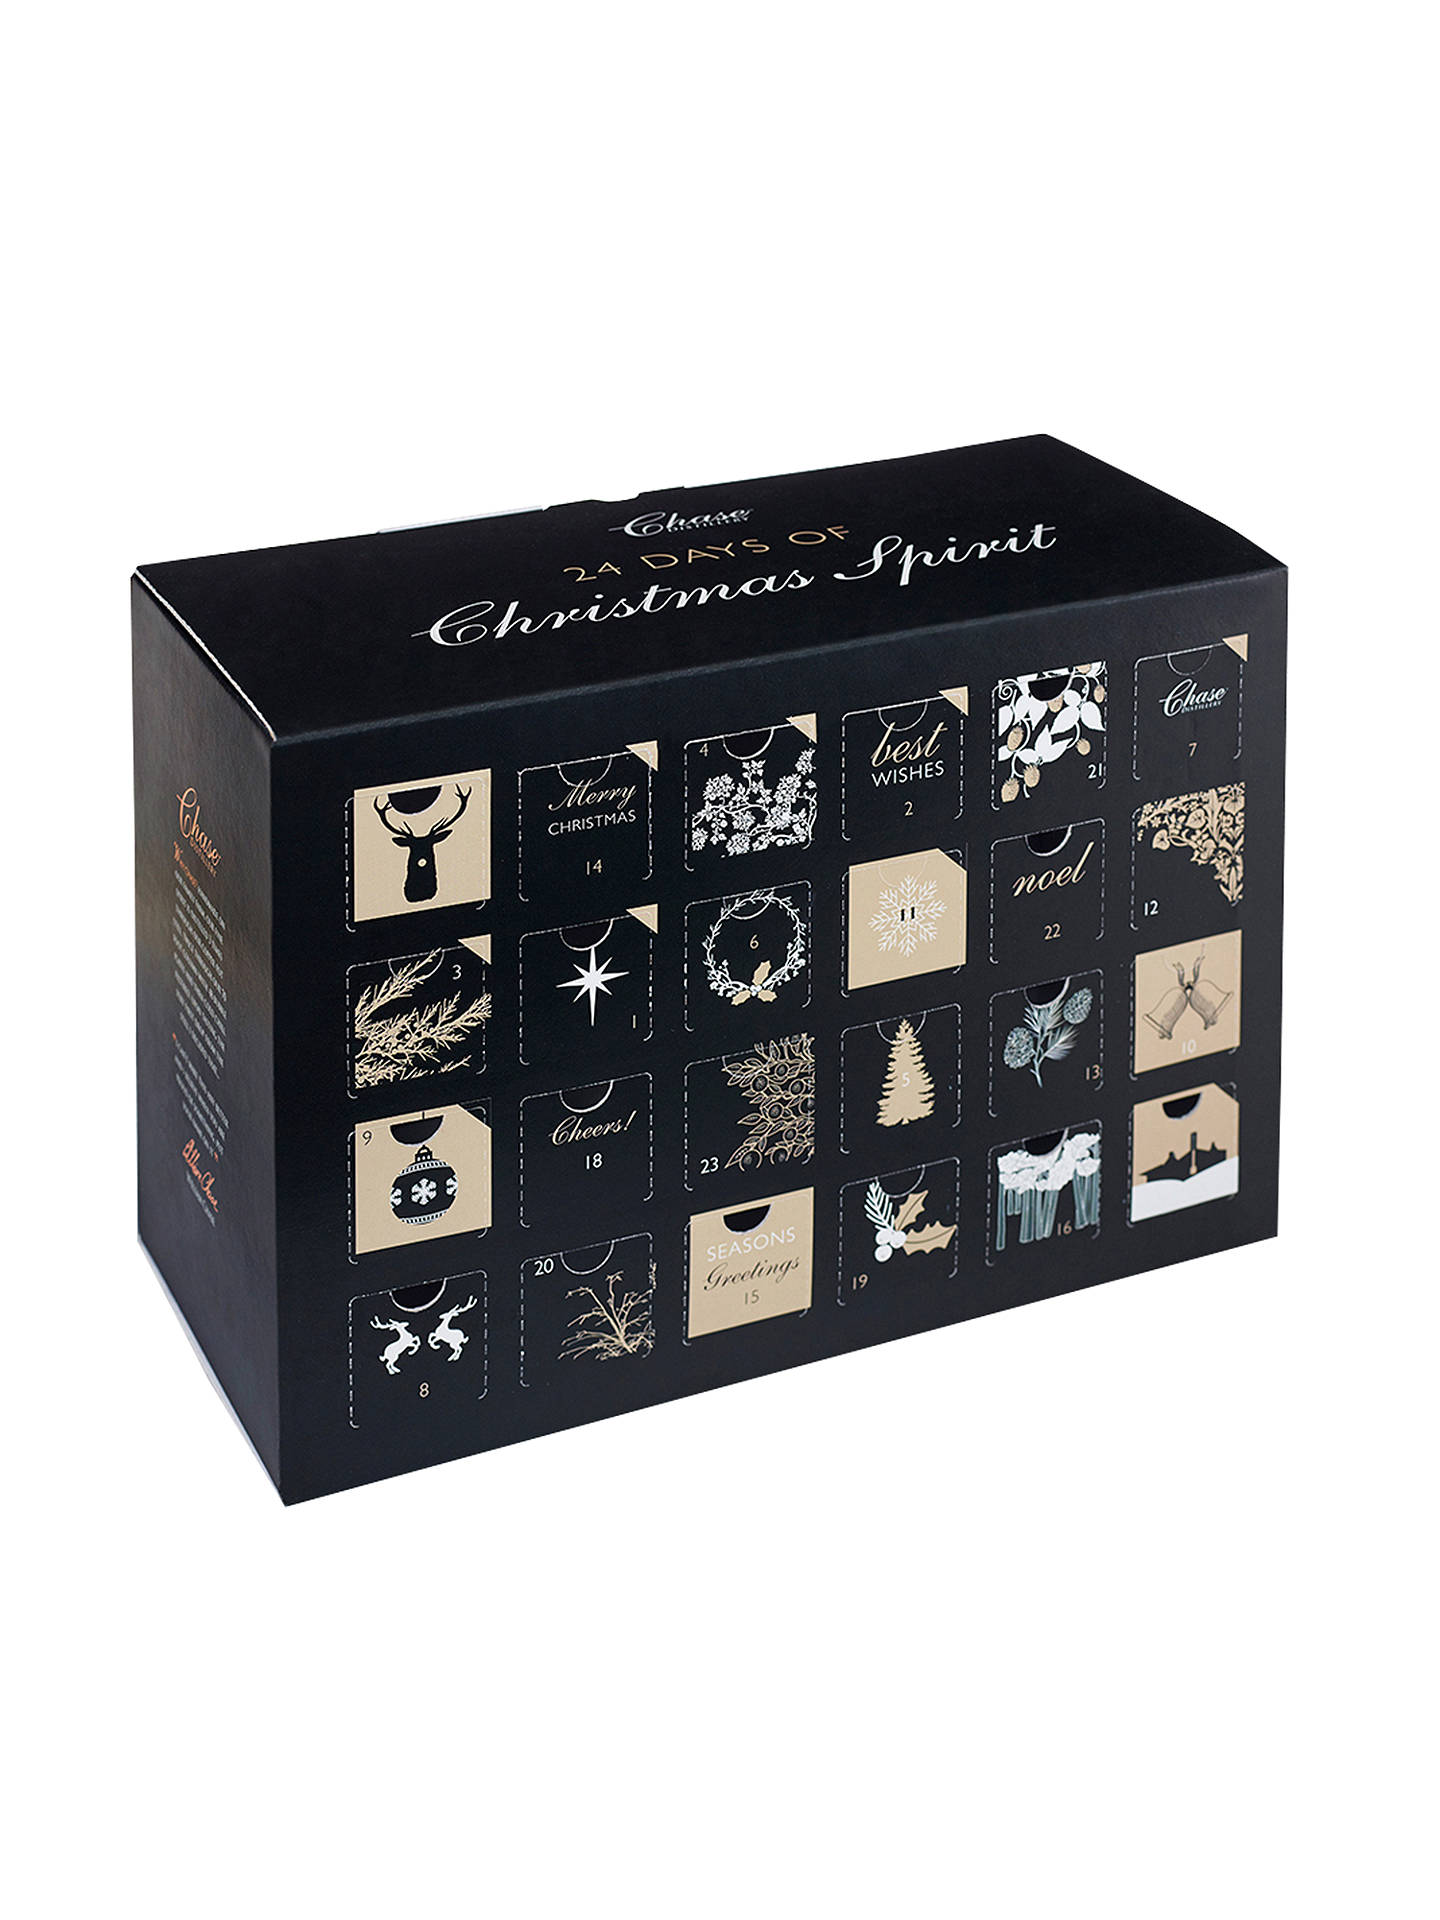 Chase \'24 Days of Christmas Spirit\' Advent Calendar at John Lewis ...